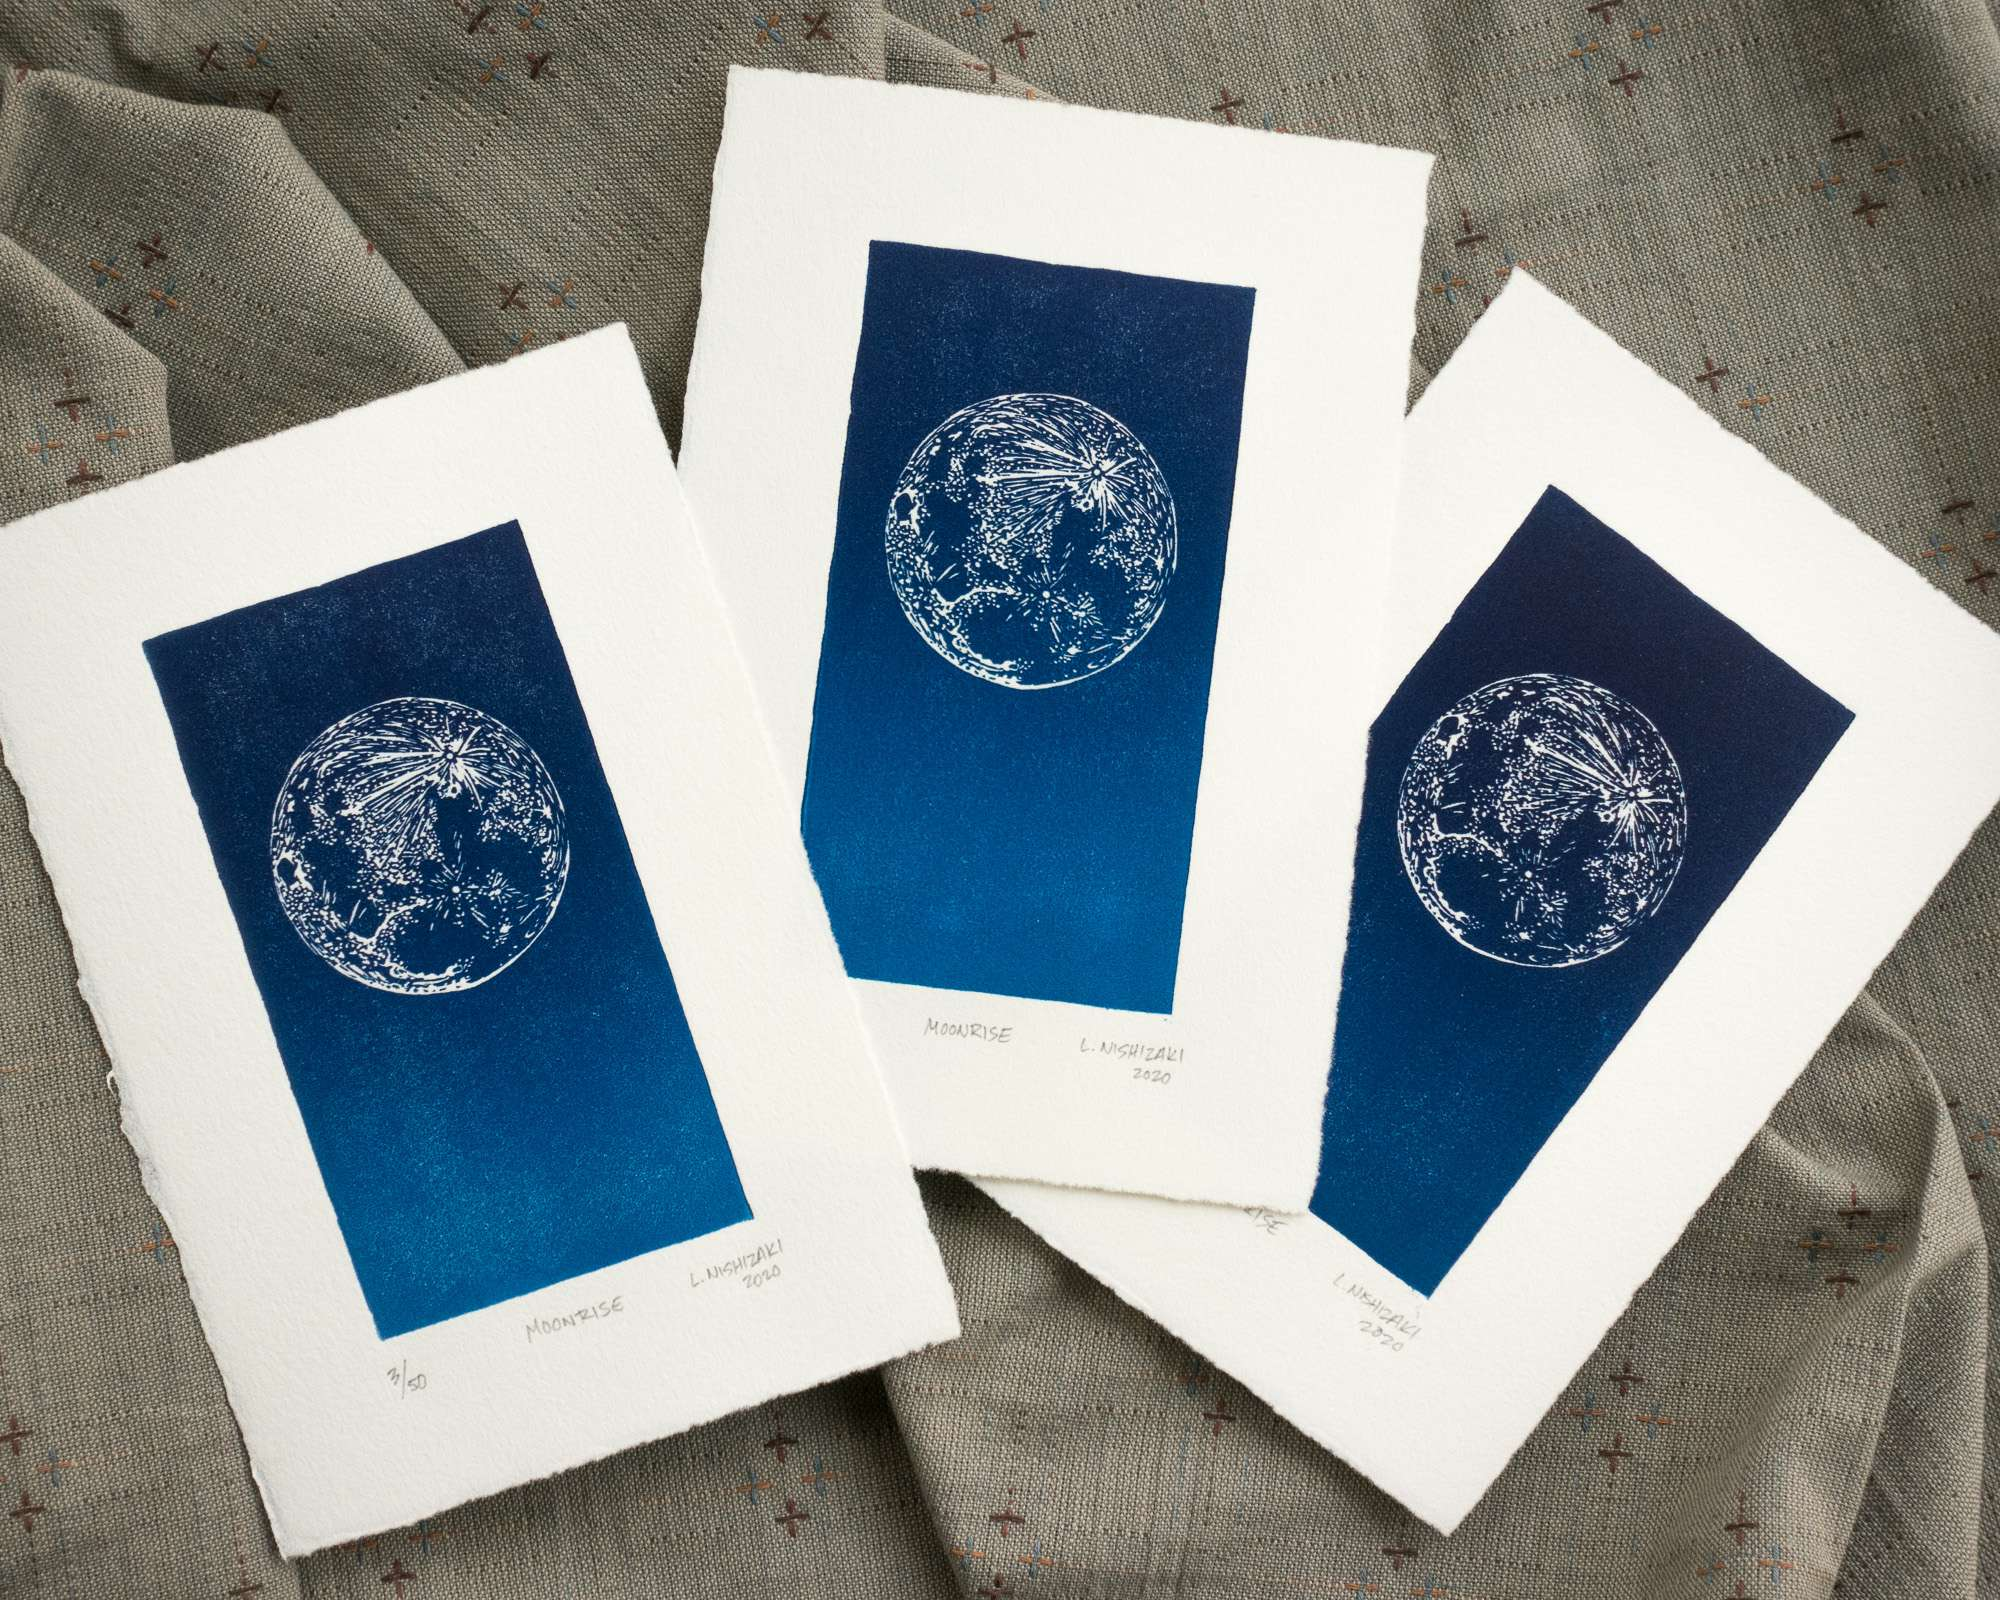 Three overlapping vertical prints, each depicting a moon in the top section of a blue rectangle. Each blue rectangle is dark blue at the top and fades to a lighter vibrant blue at the bottom. The color gradients of the three prints vary slightly in ink coverage and darkness.